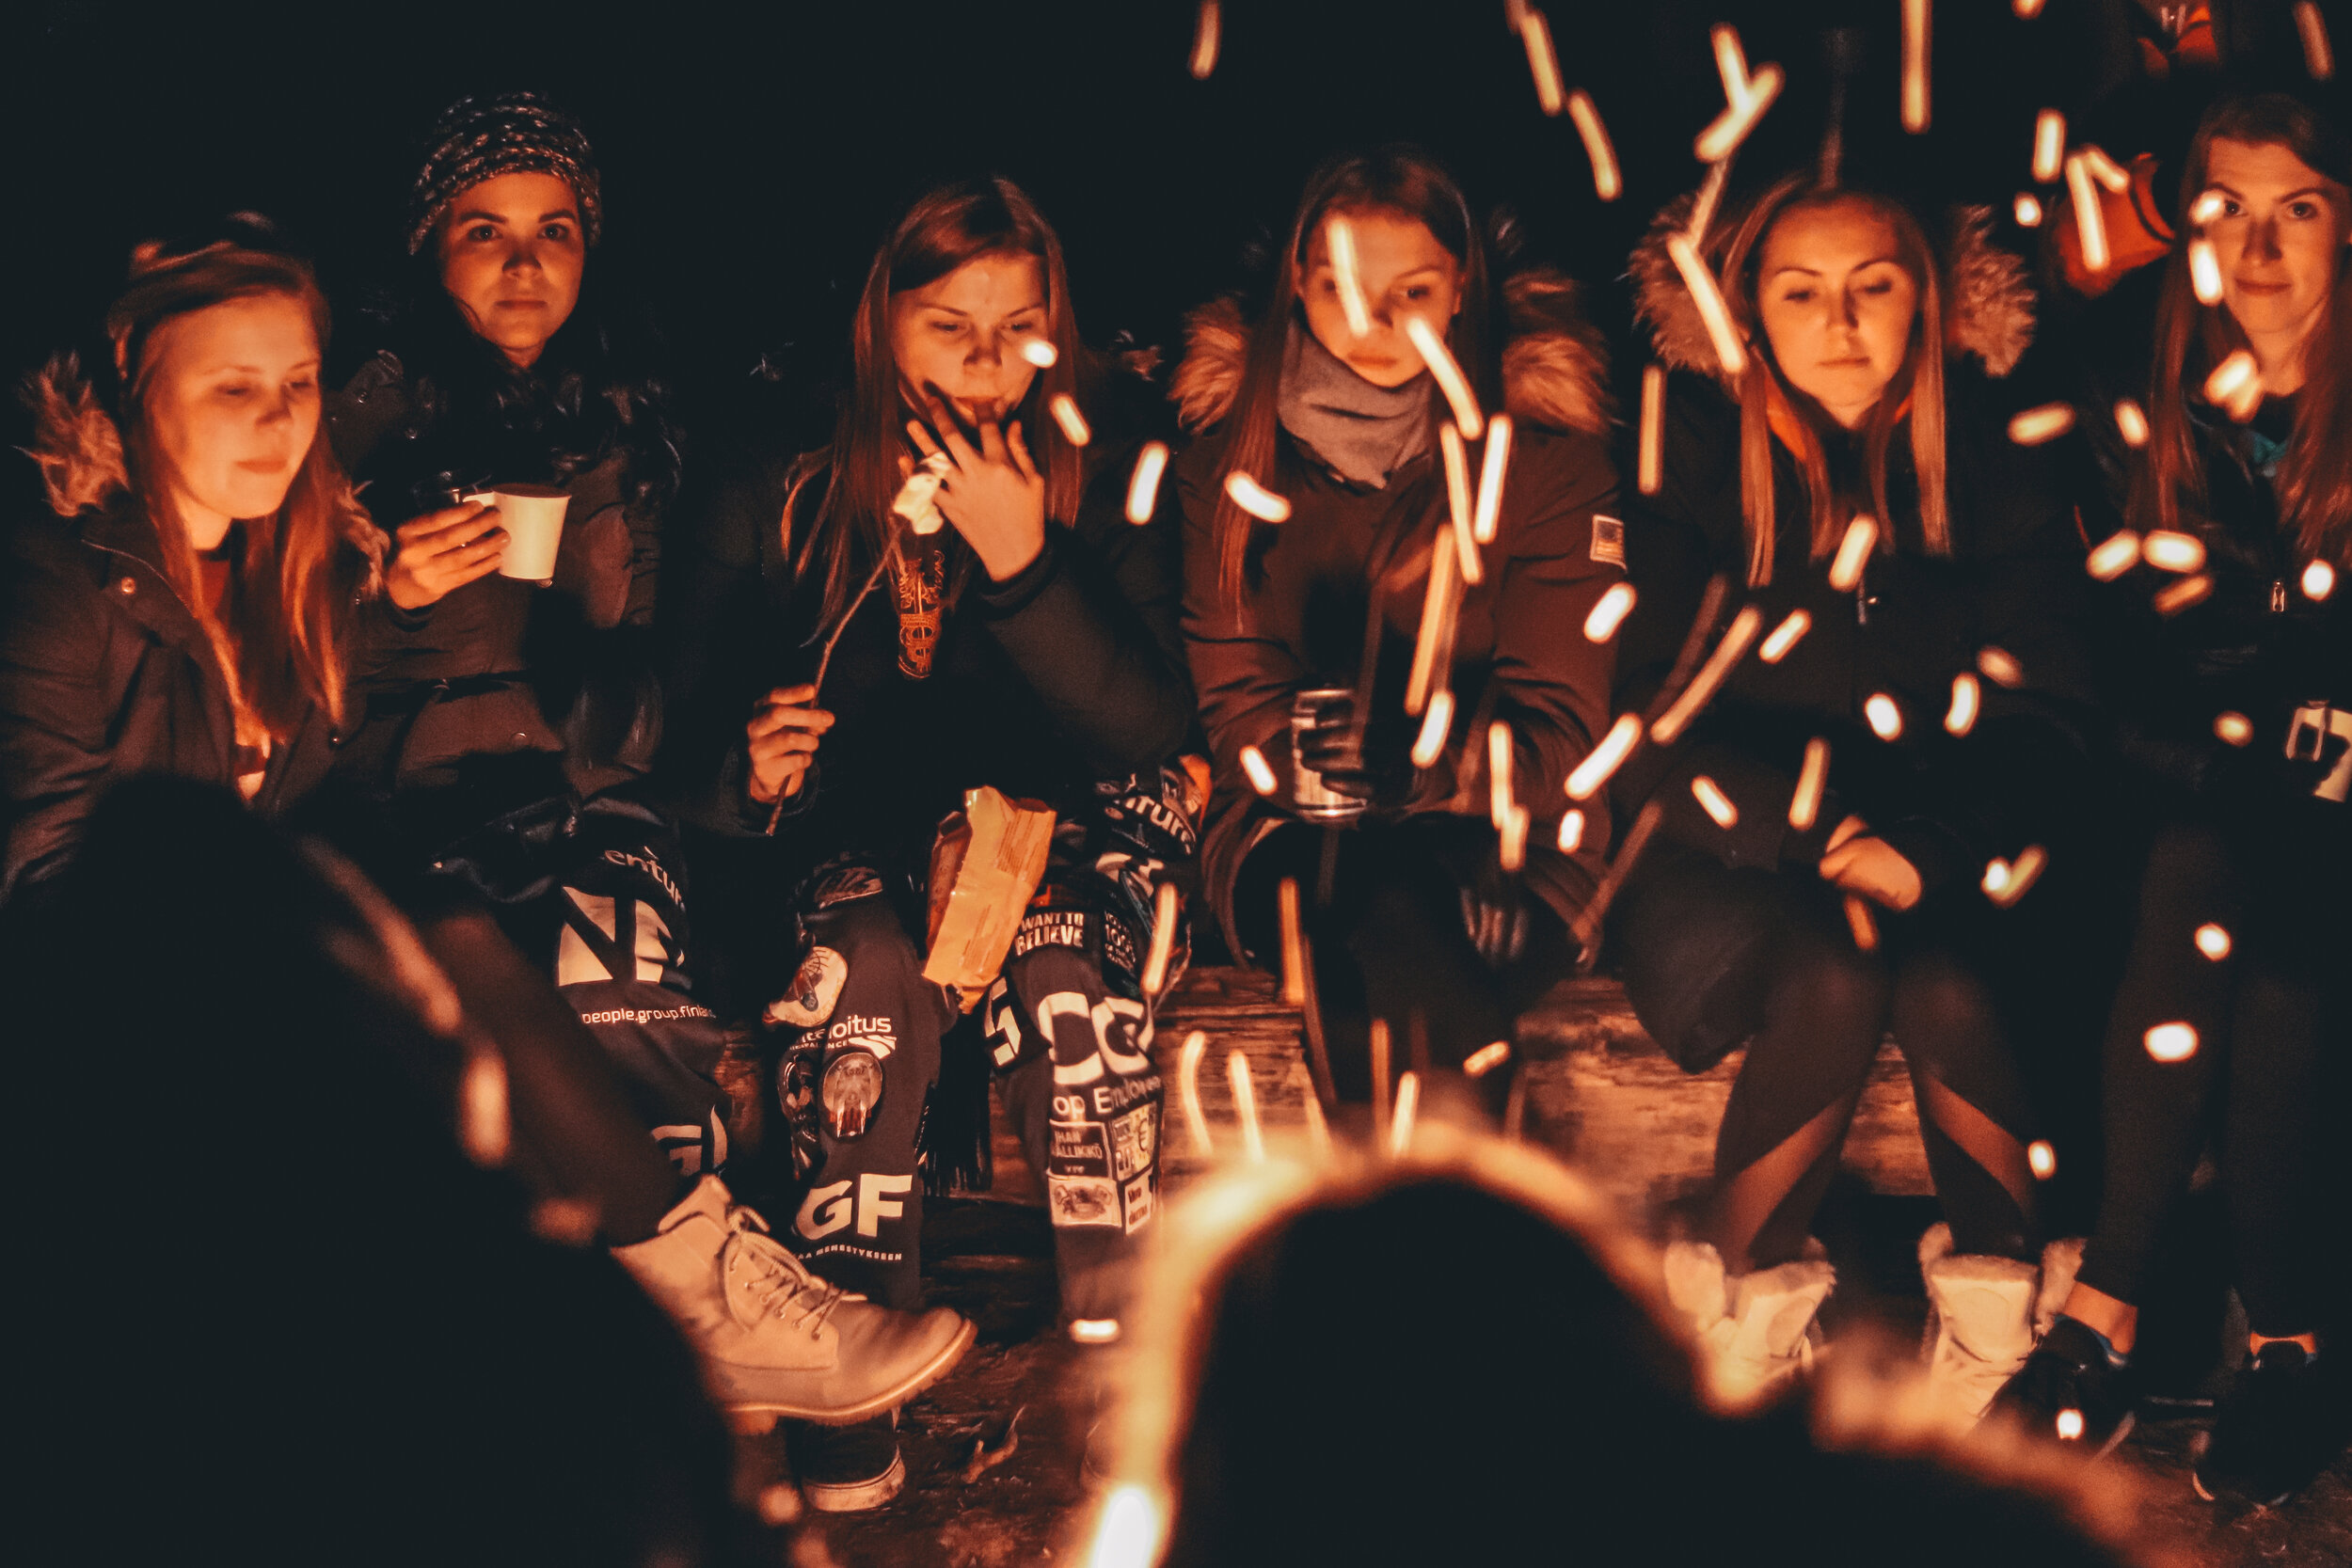 Summer youth activities - During the summer, many activities are on the schedule to keep teenagers engaged from devotionals to service events. Teenagers are given plenty of choices to keep themselves spiritually fit and their relationship with God healthy.